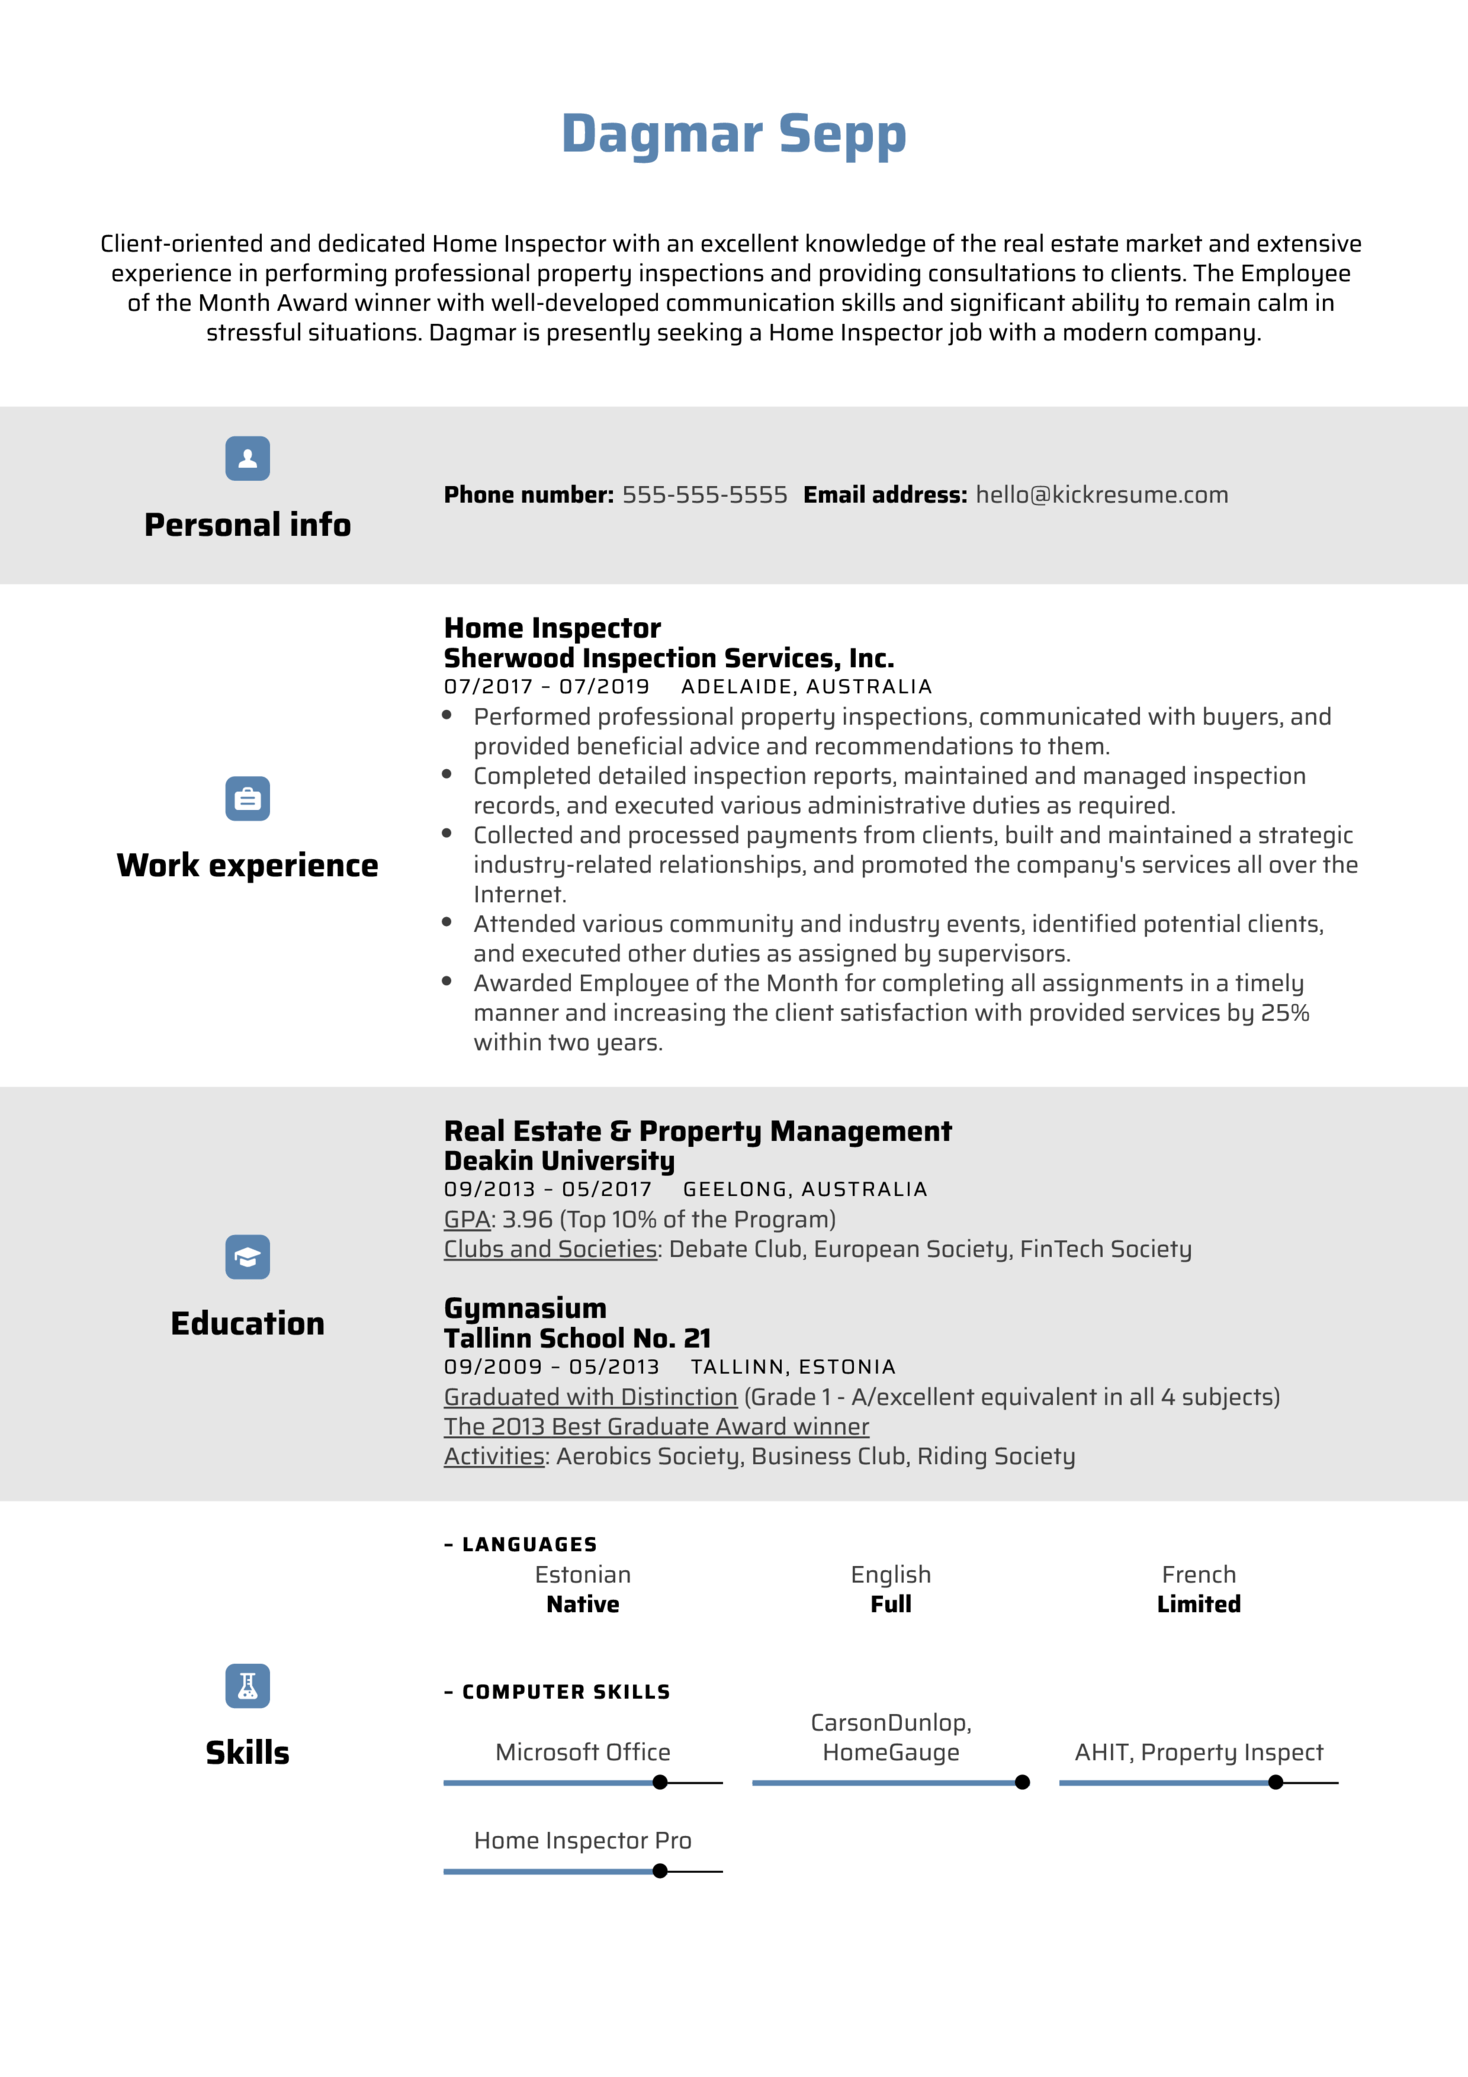 Home Inspector Resume Example (Part 1)